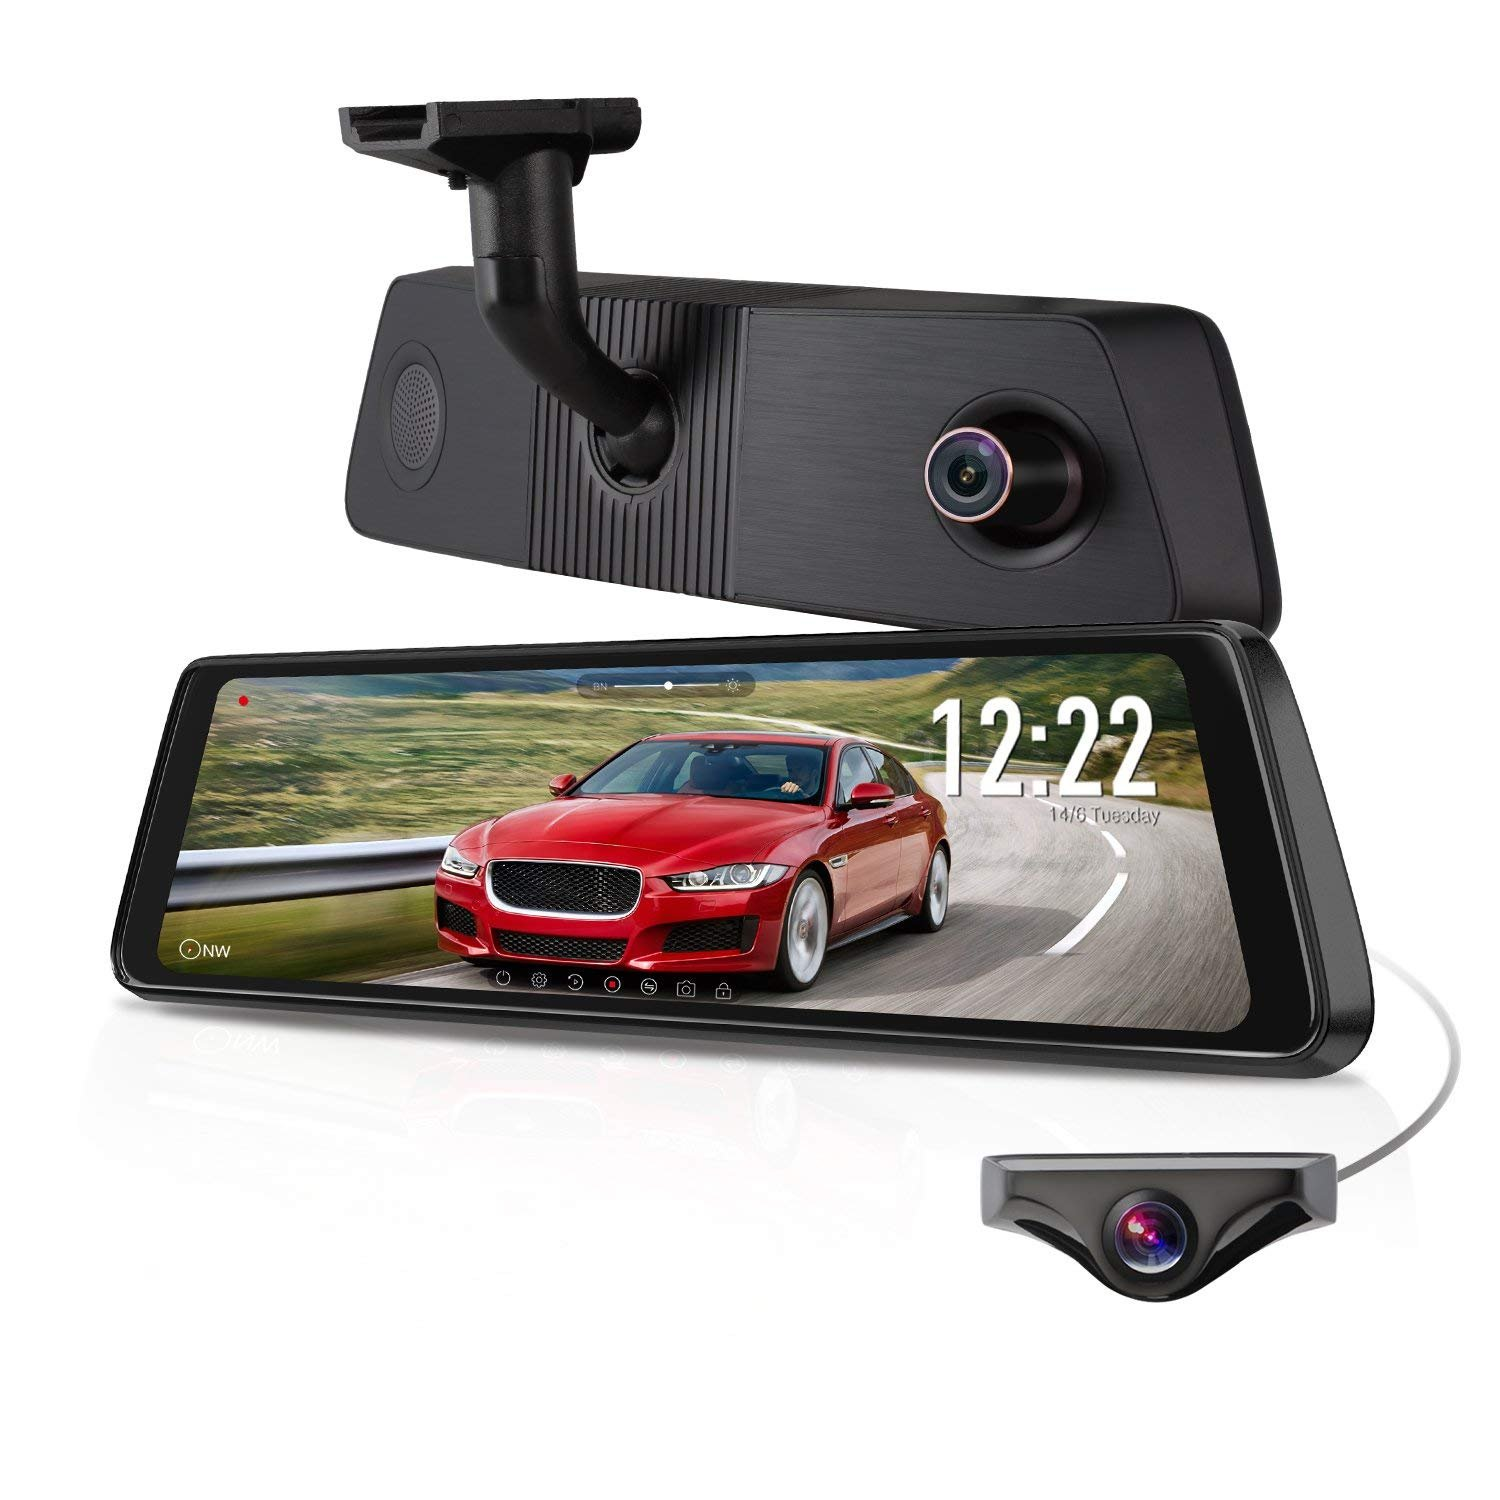 "X1PRO Rear View Mirror Dash Cam 9.88"" Full Touch Screen Dual Lens with 1296P Front and 720P Super Night Vision Stream Media Backup Camera kit, WDR,LDWS, GPS Tracking,Auto-Brightness Adjusting"